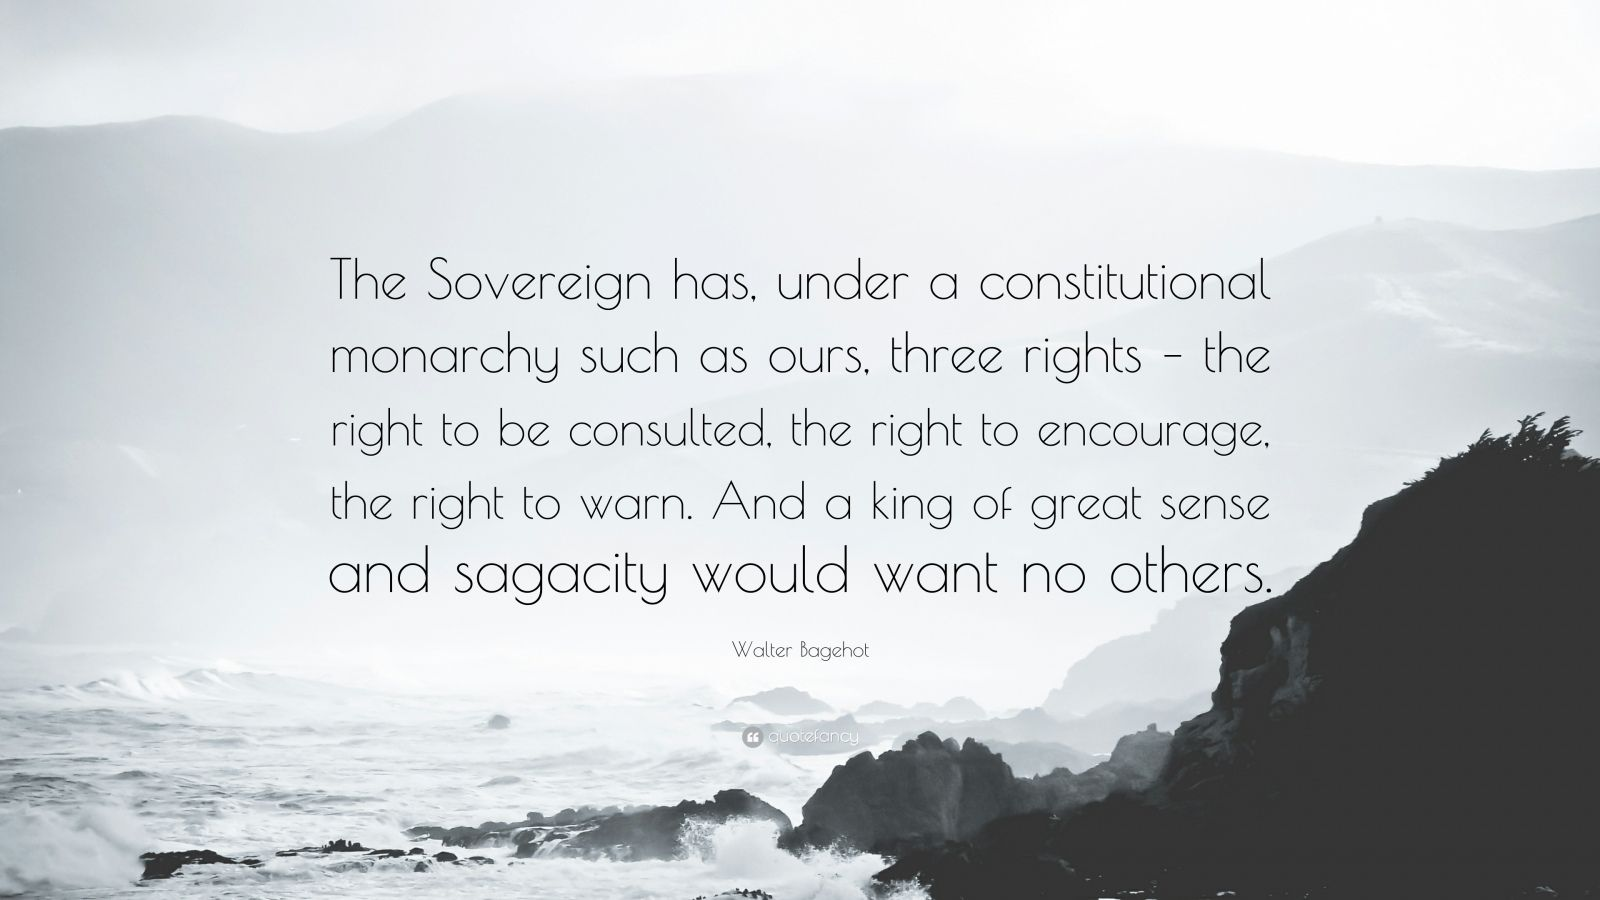 """Walter Bagehot Quote: """"The Sovereign has, under a constitutional monarchy such as ours, three rights – the right to be consulted, the right to encourage, the right to warn. And a king of great sense and sagacity would want no others."""""""